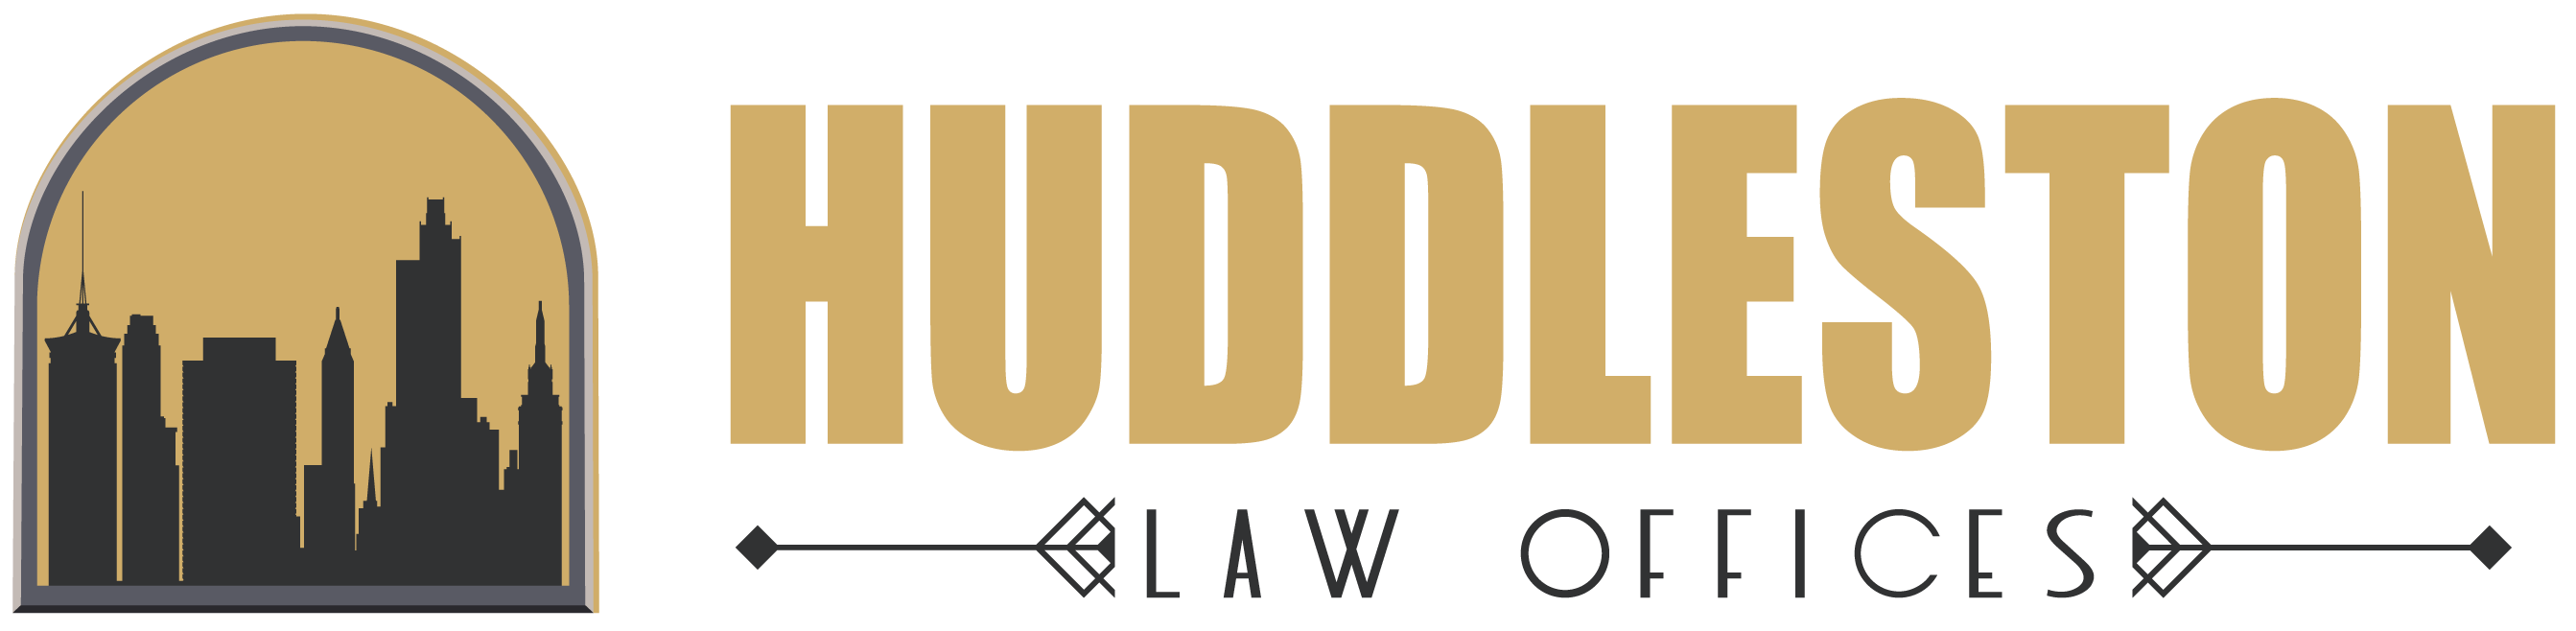 Huddleston Law Offices